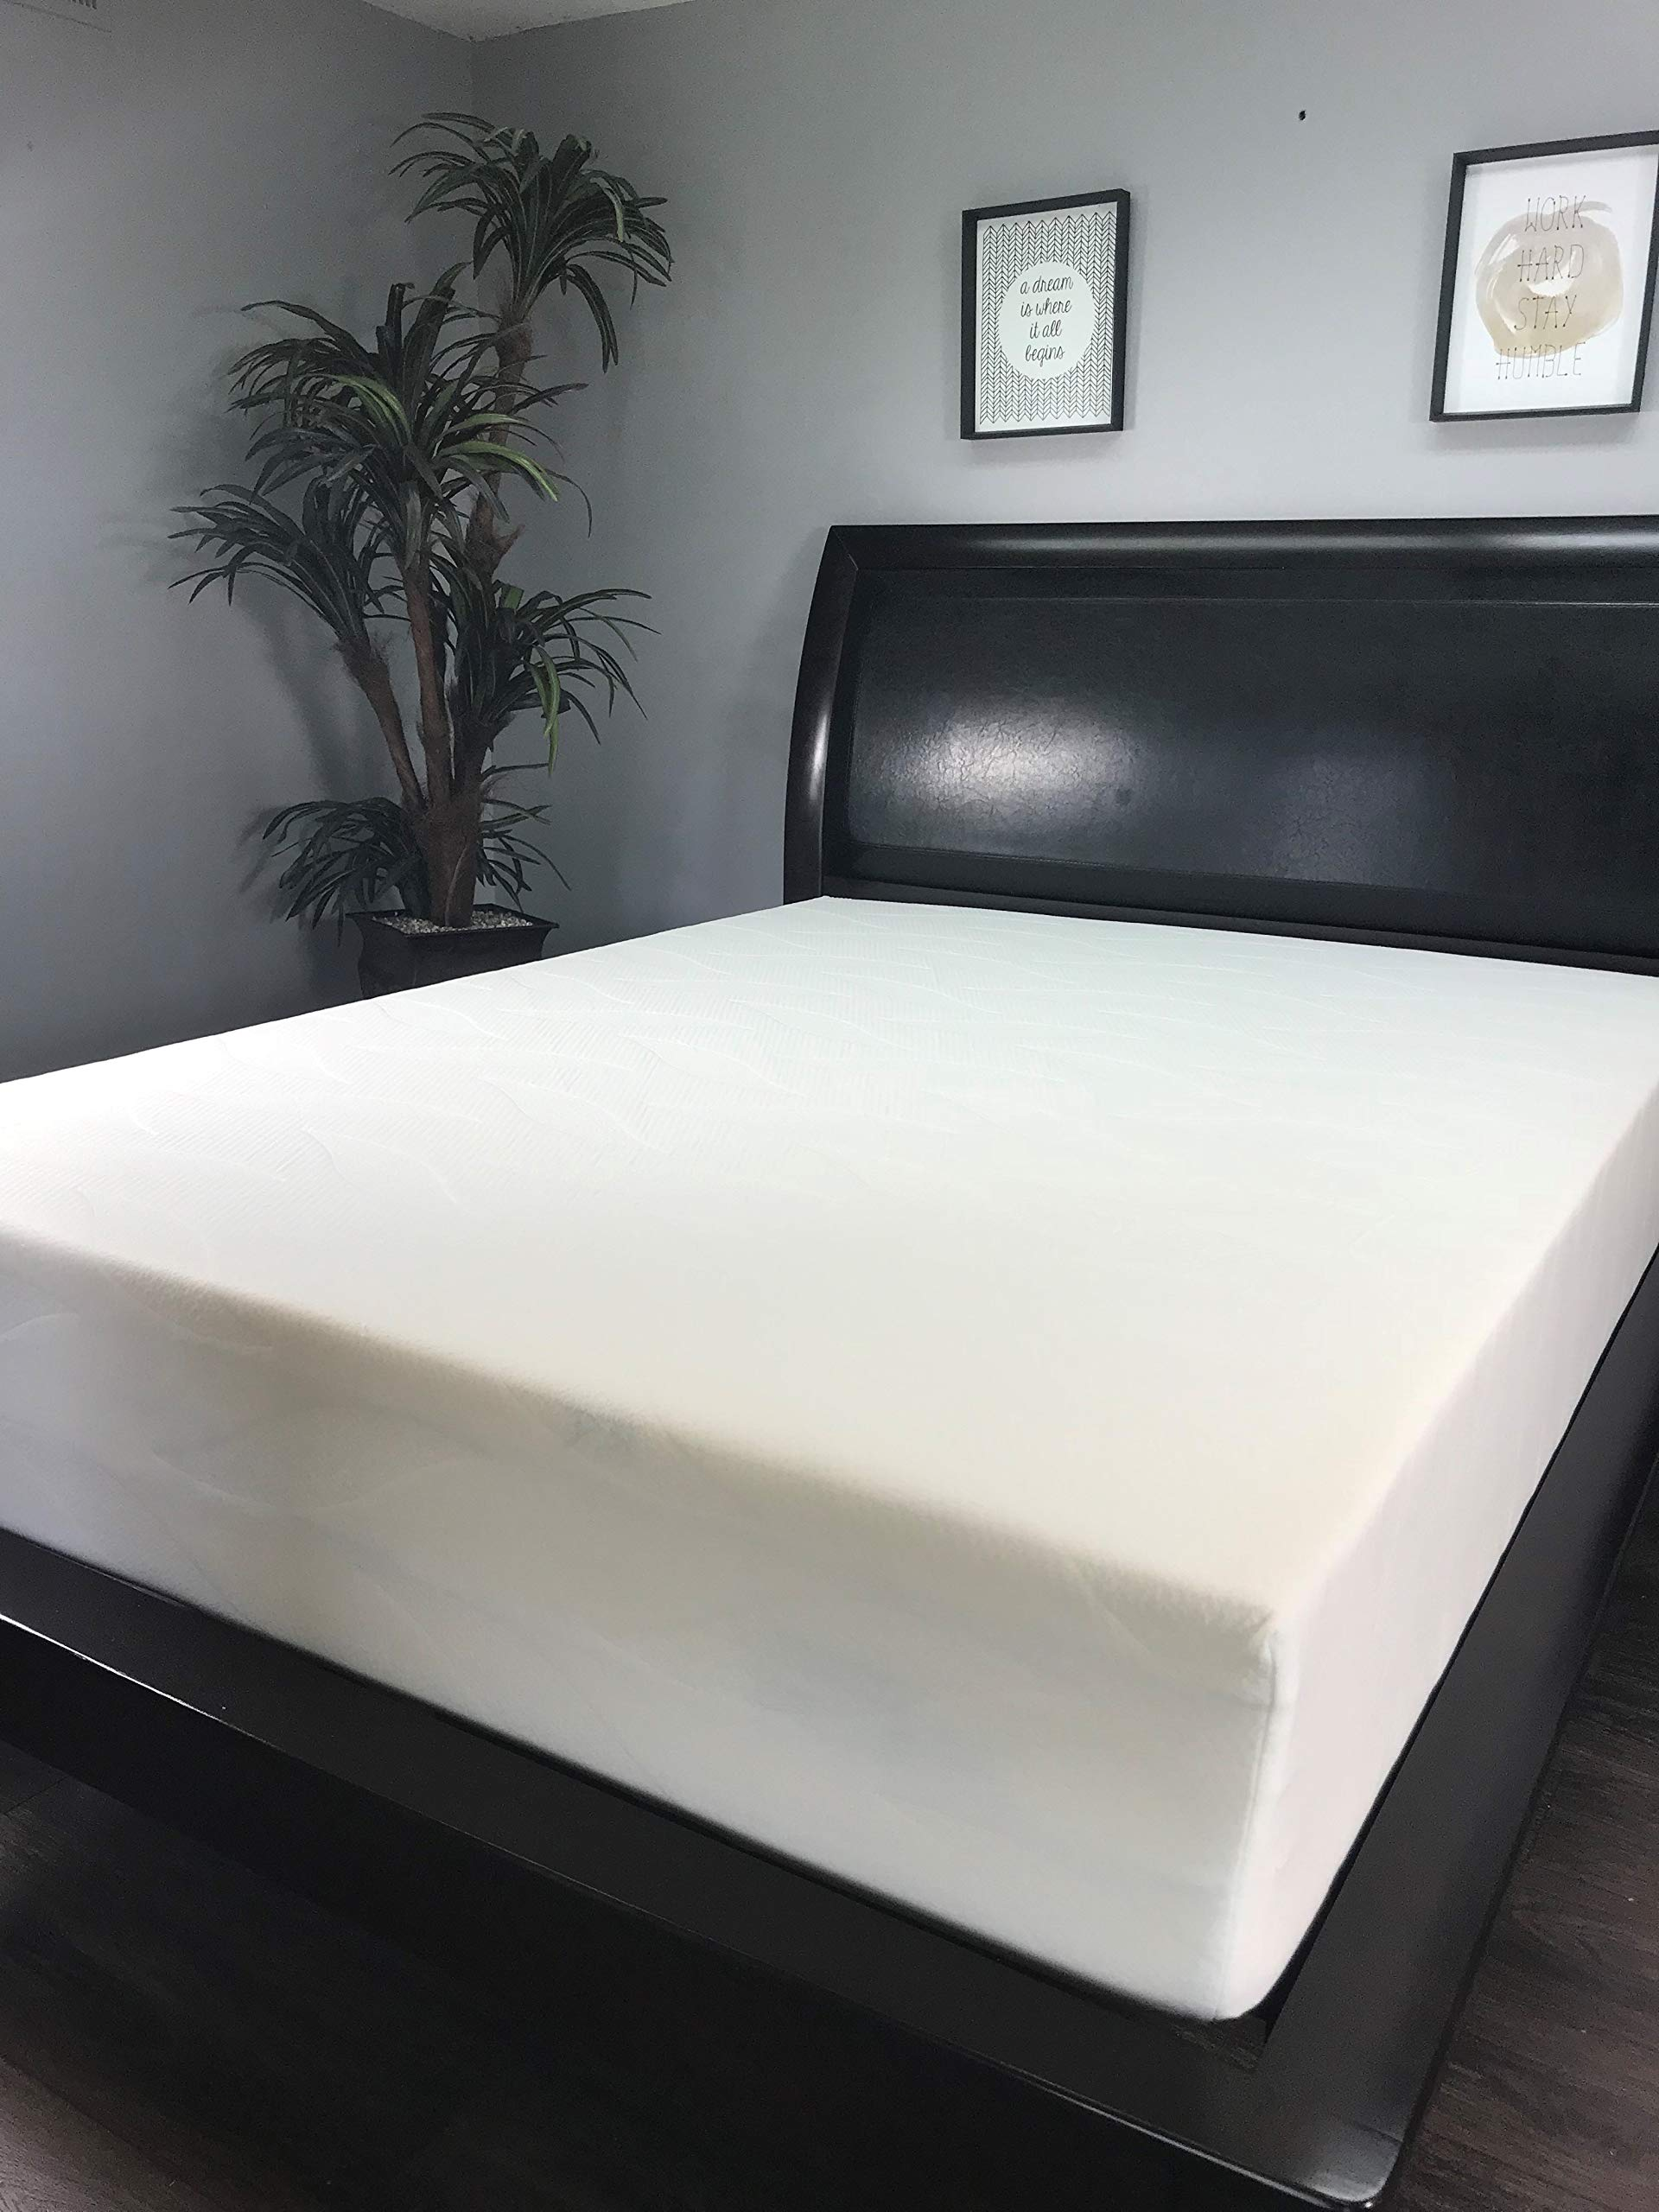 American Mattress Company 8'' Graphite Infused Memory Foam-Sleeps Cooler-100% Made in The USA-Medium Firm (34x75) by American Mattress Company